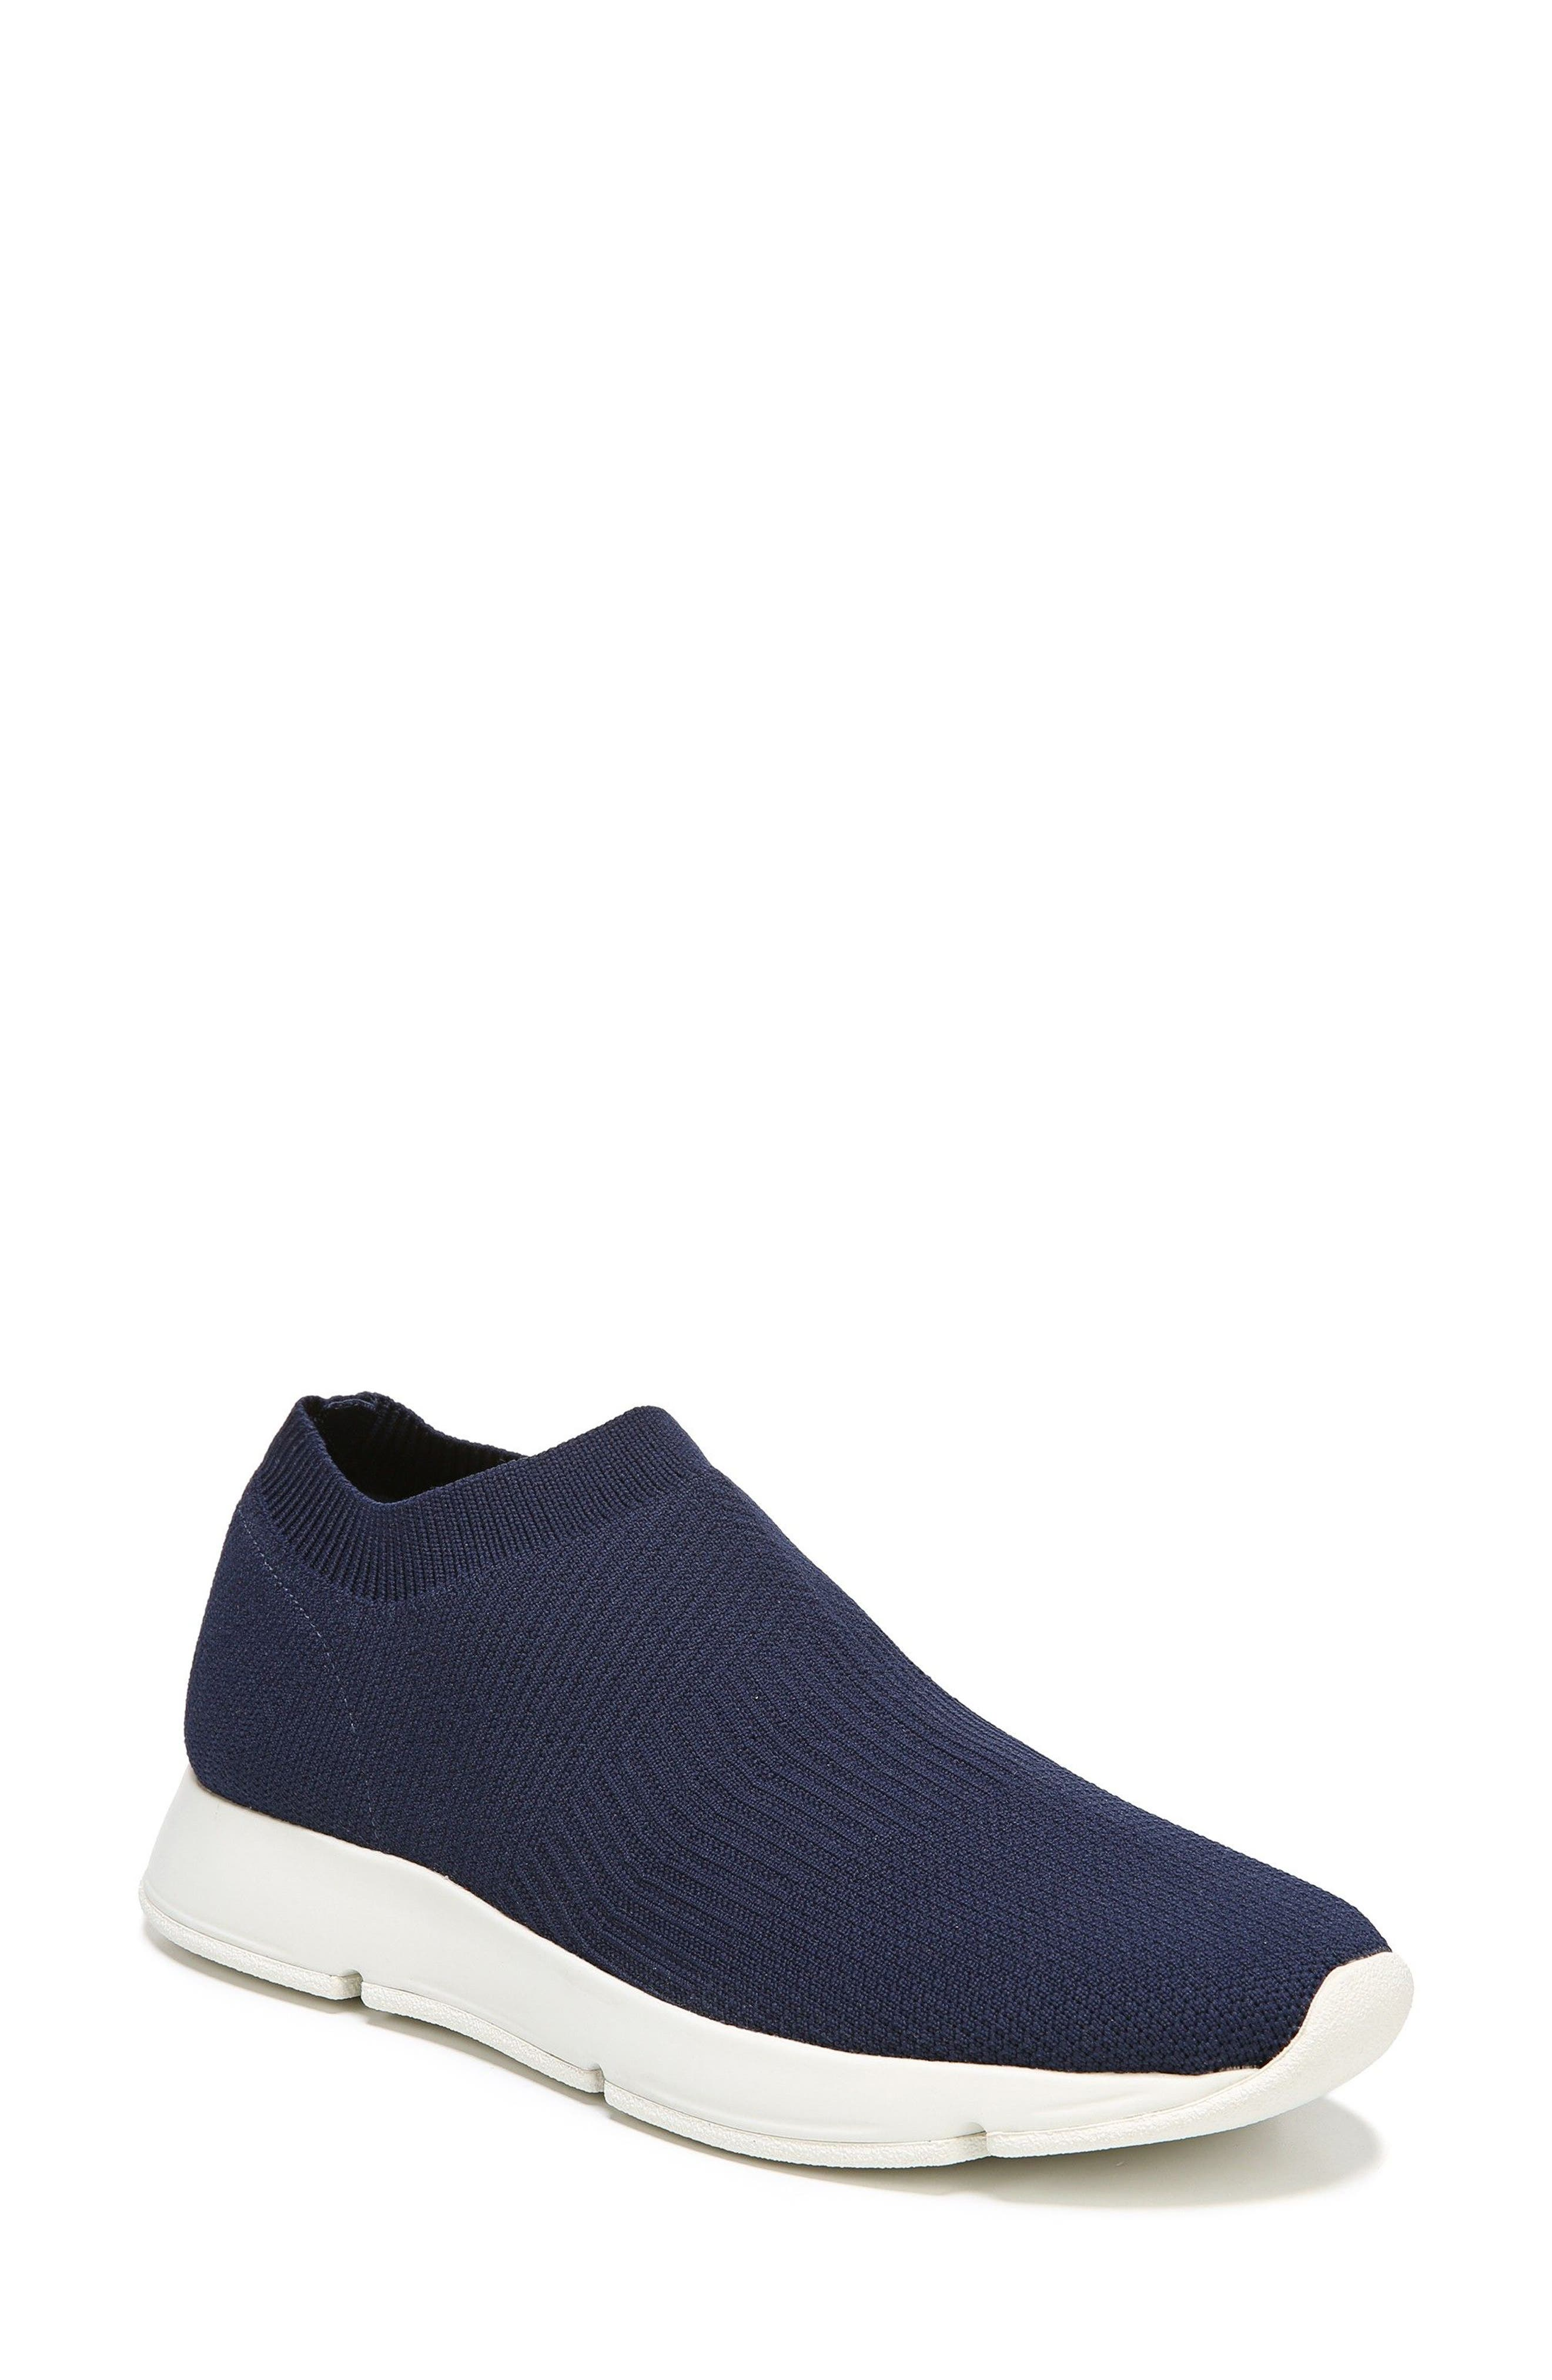 Theroux Slip-On Knit Sneaker,                             Main thumbnail 3, color,